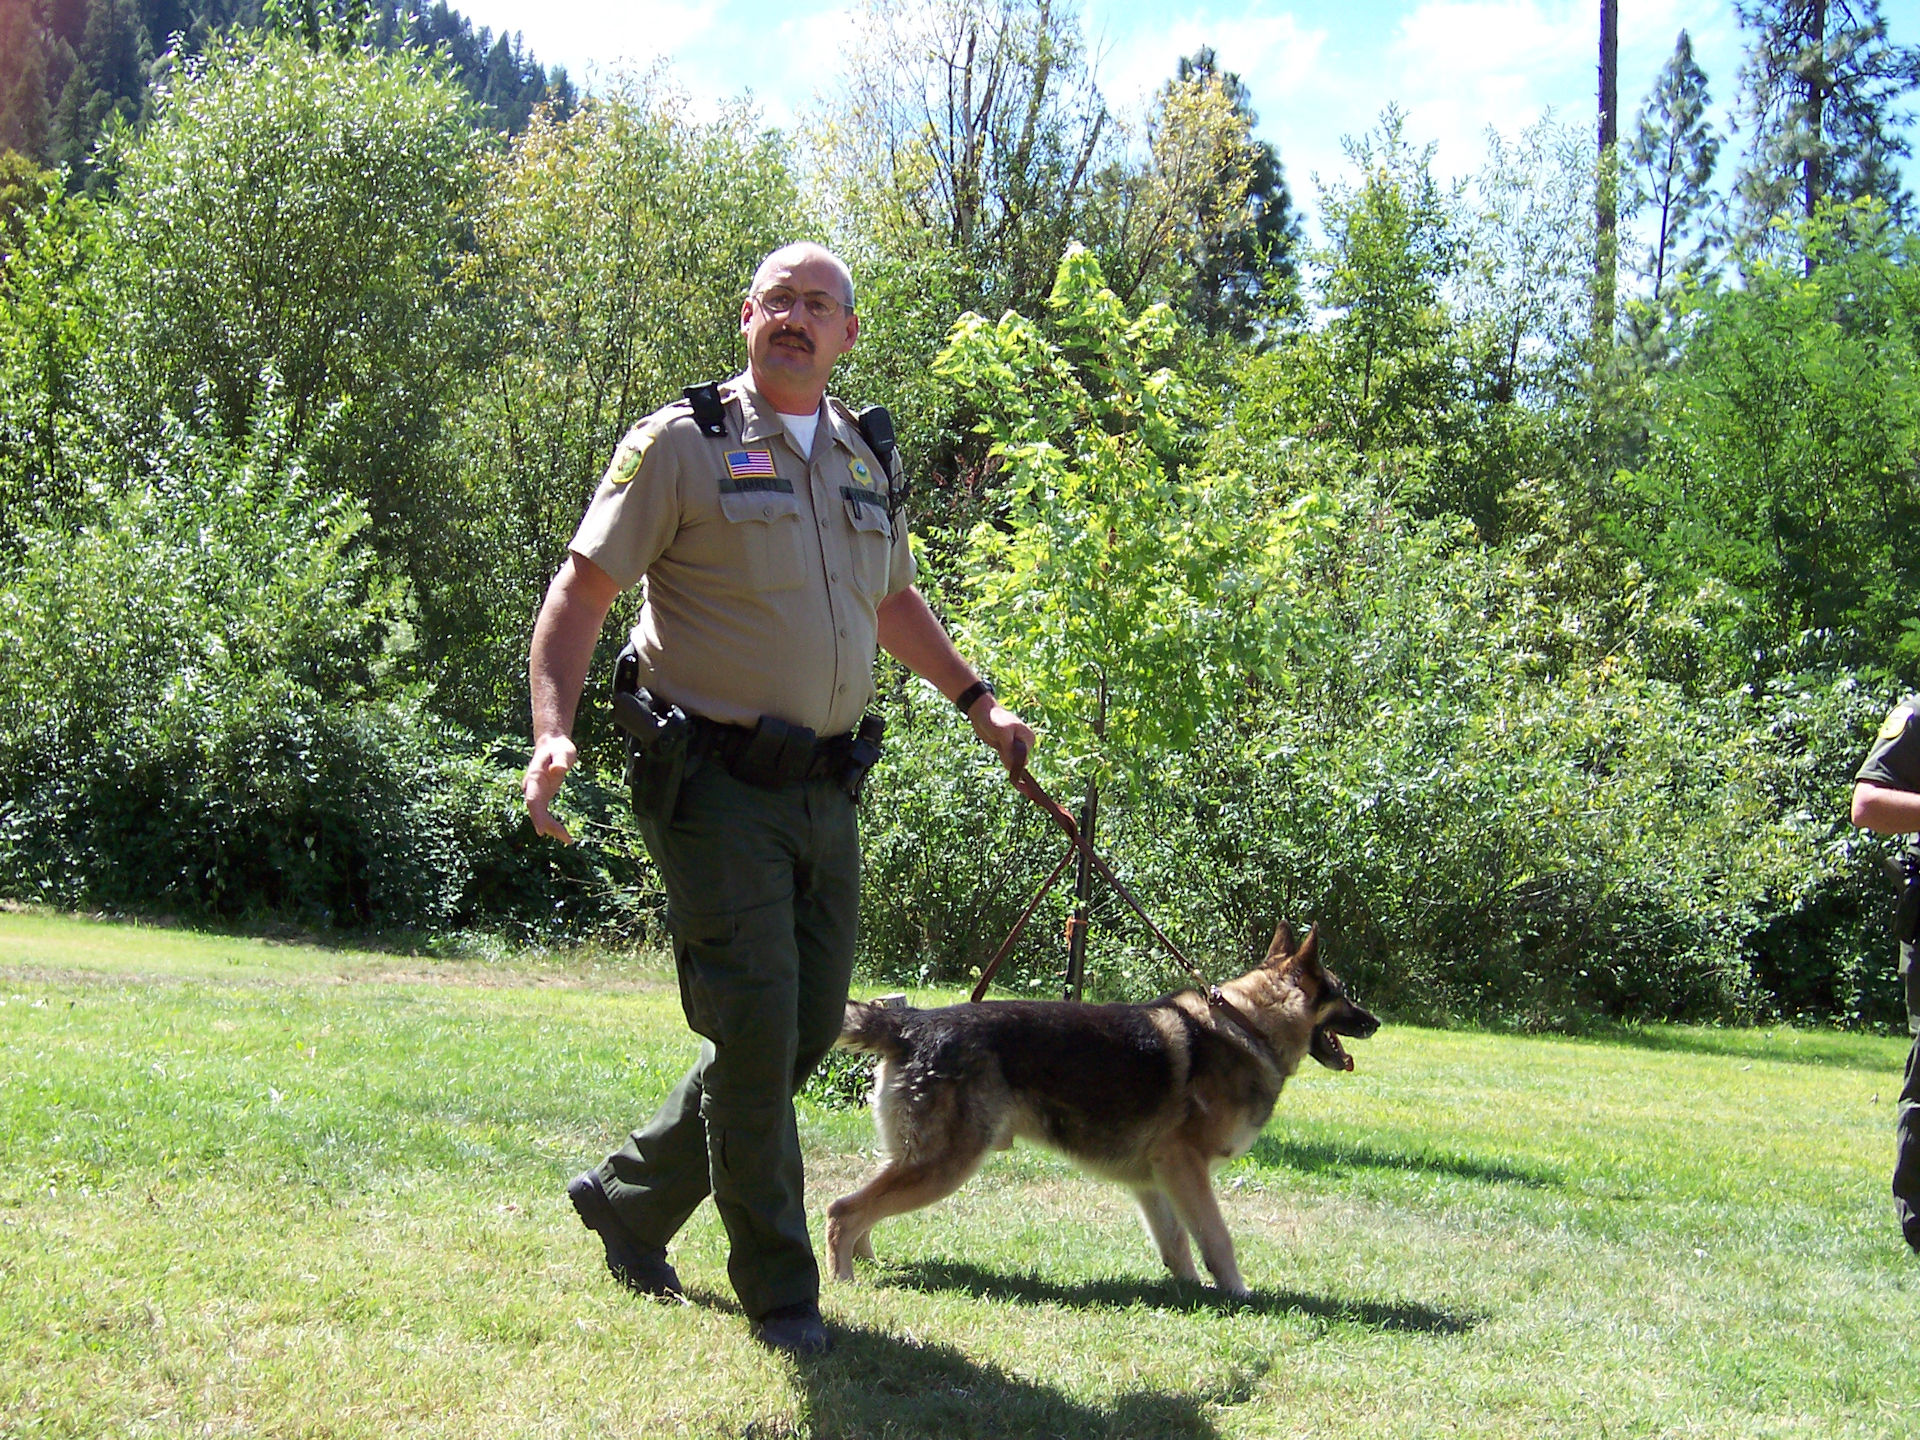 A deputy with his K9 dog at the Happy Camp, CA Bigfoot Jamboree in 2005.